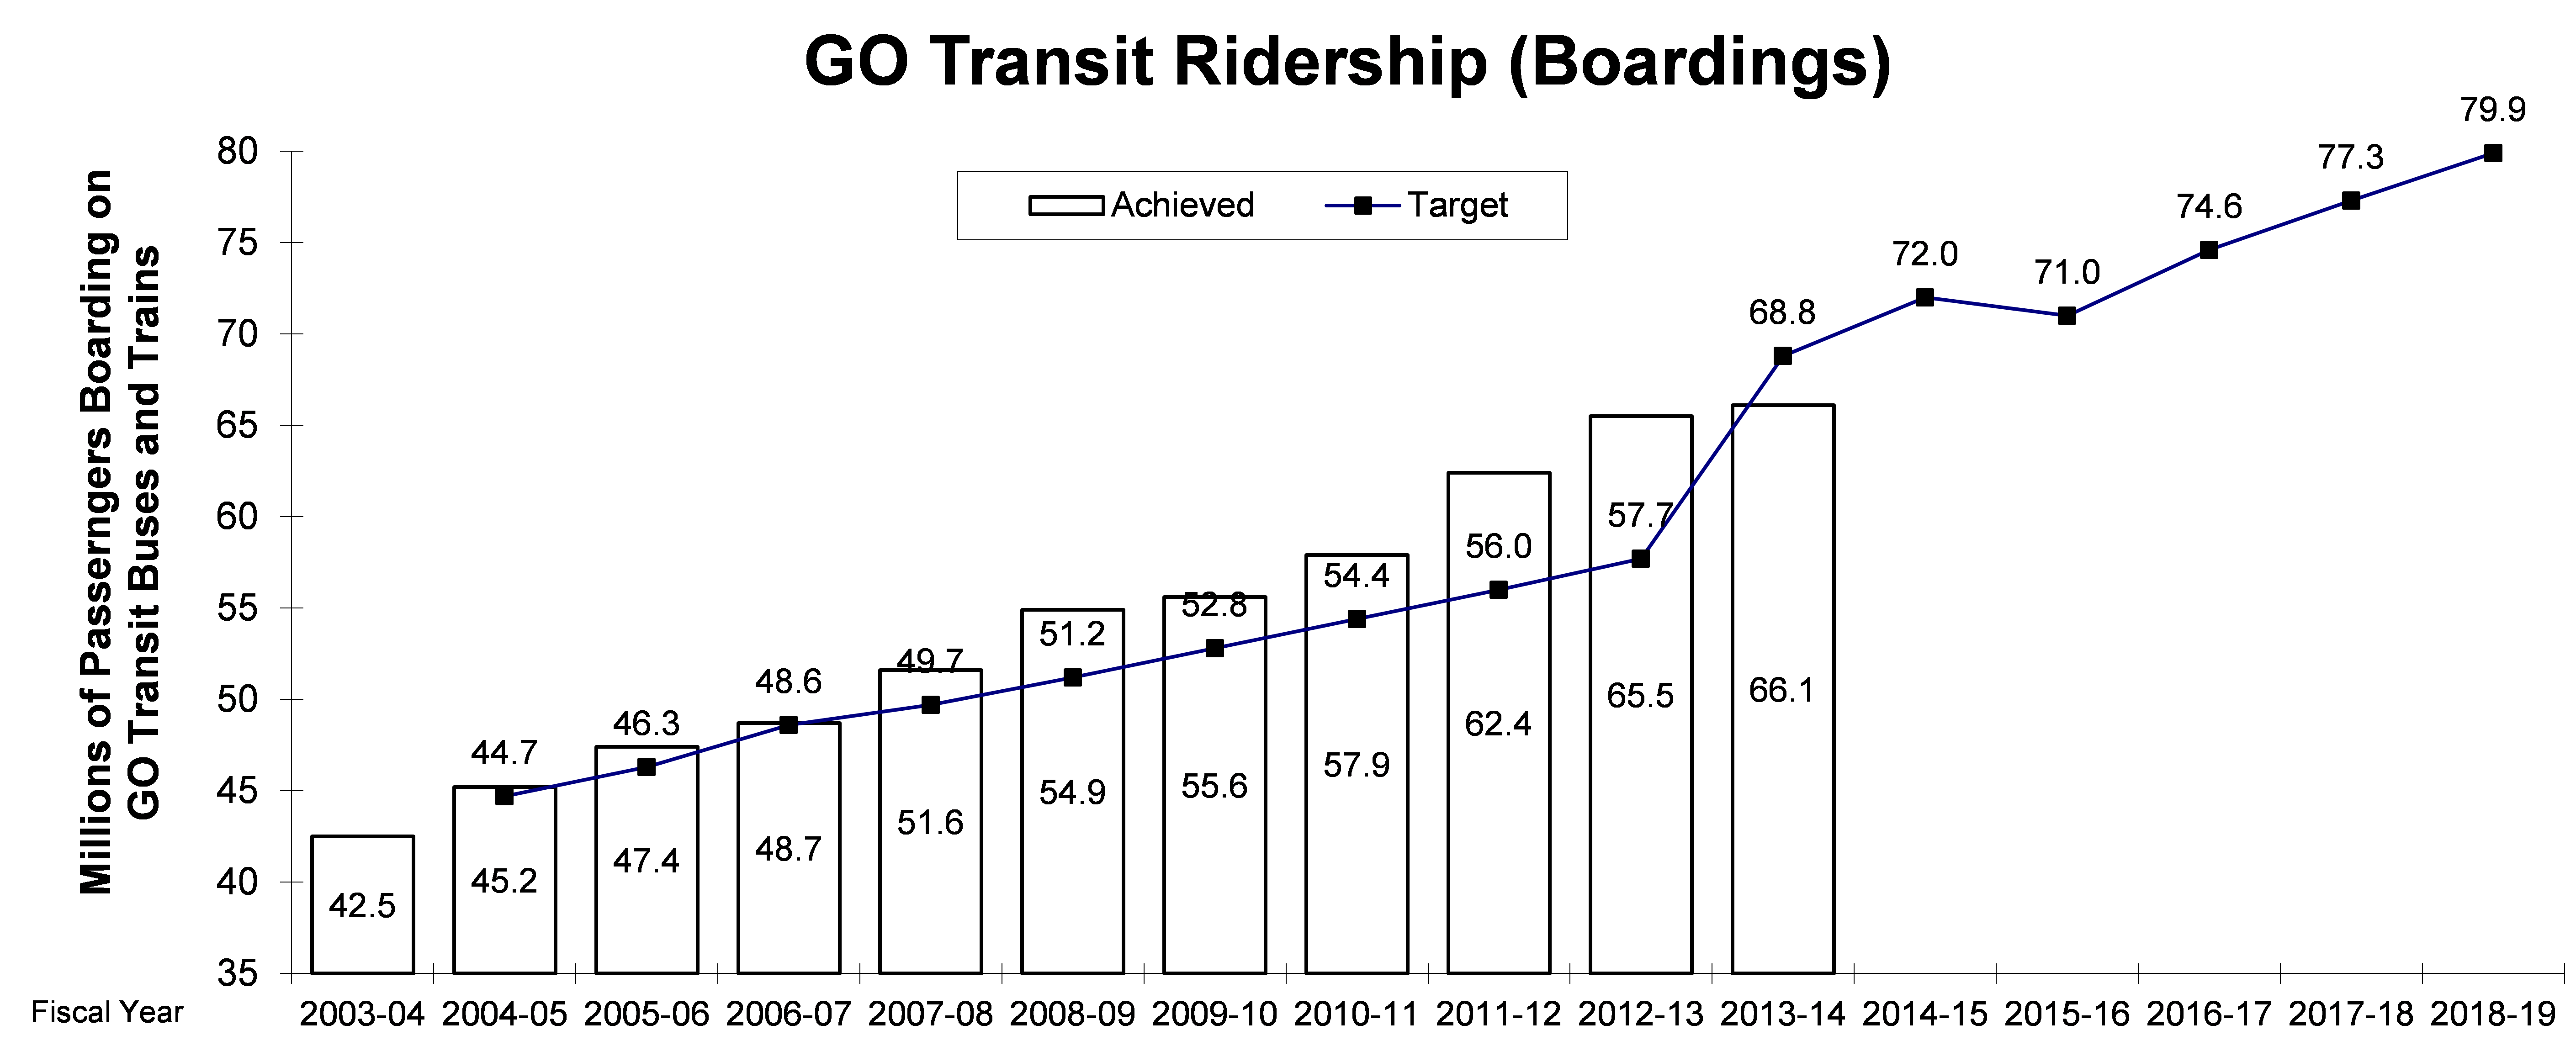 GO Transit Ridership (Boardings)